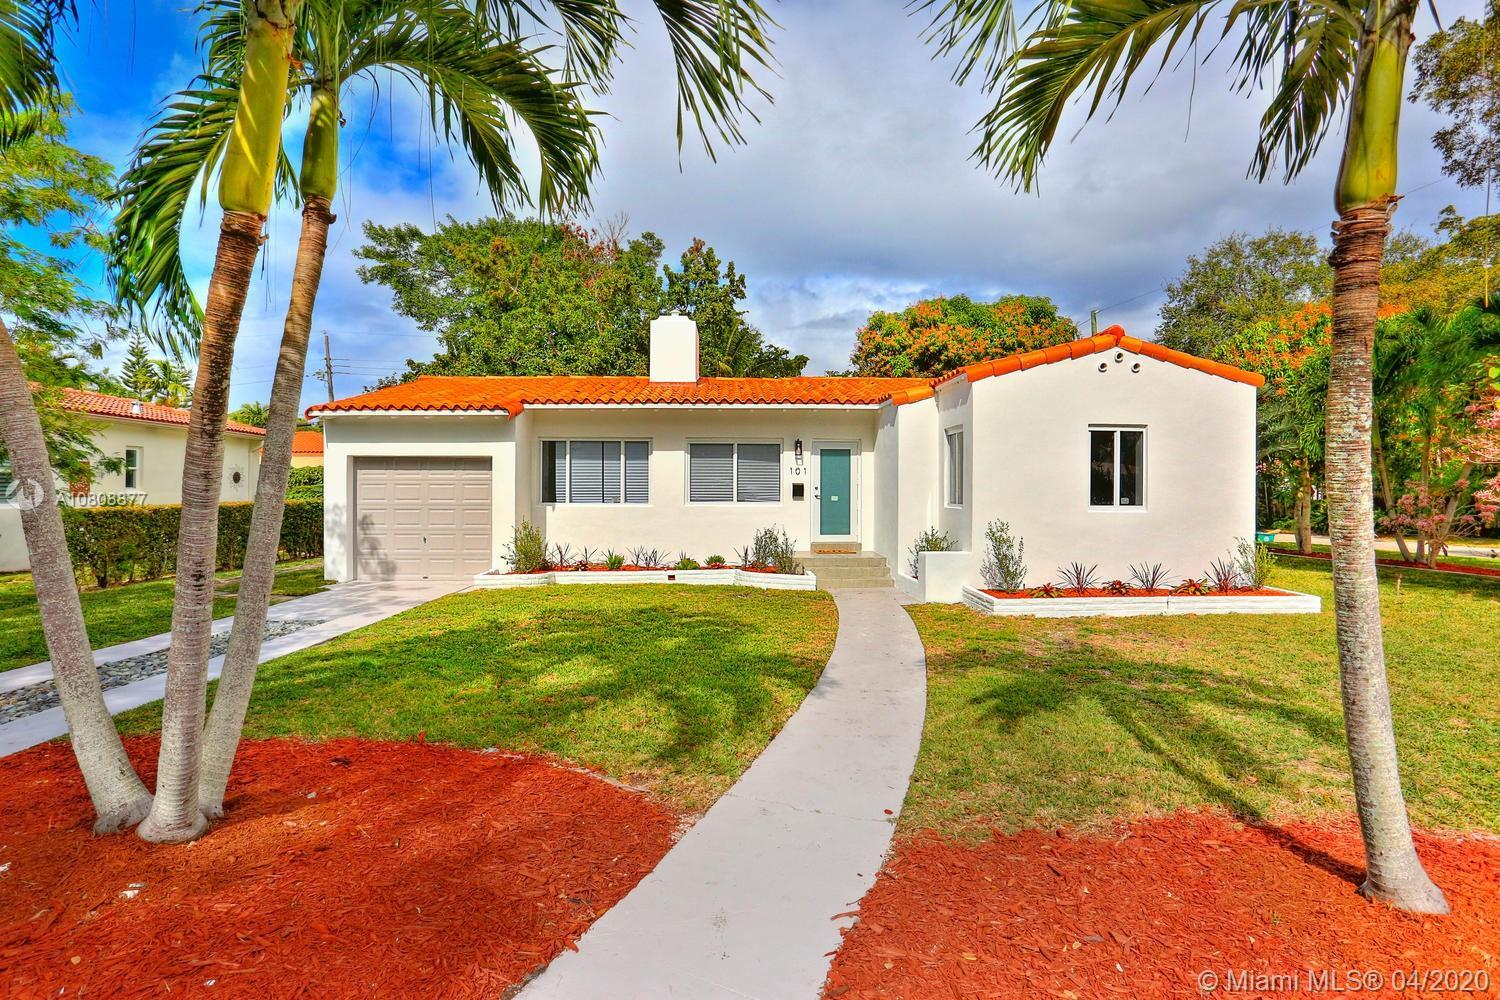 Lovely home in a coveted Miami Shores neighborhood. Recent total renovation. Light-filled living spa